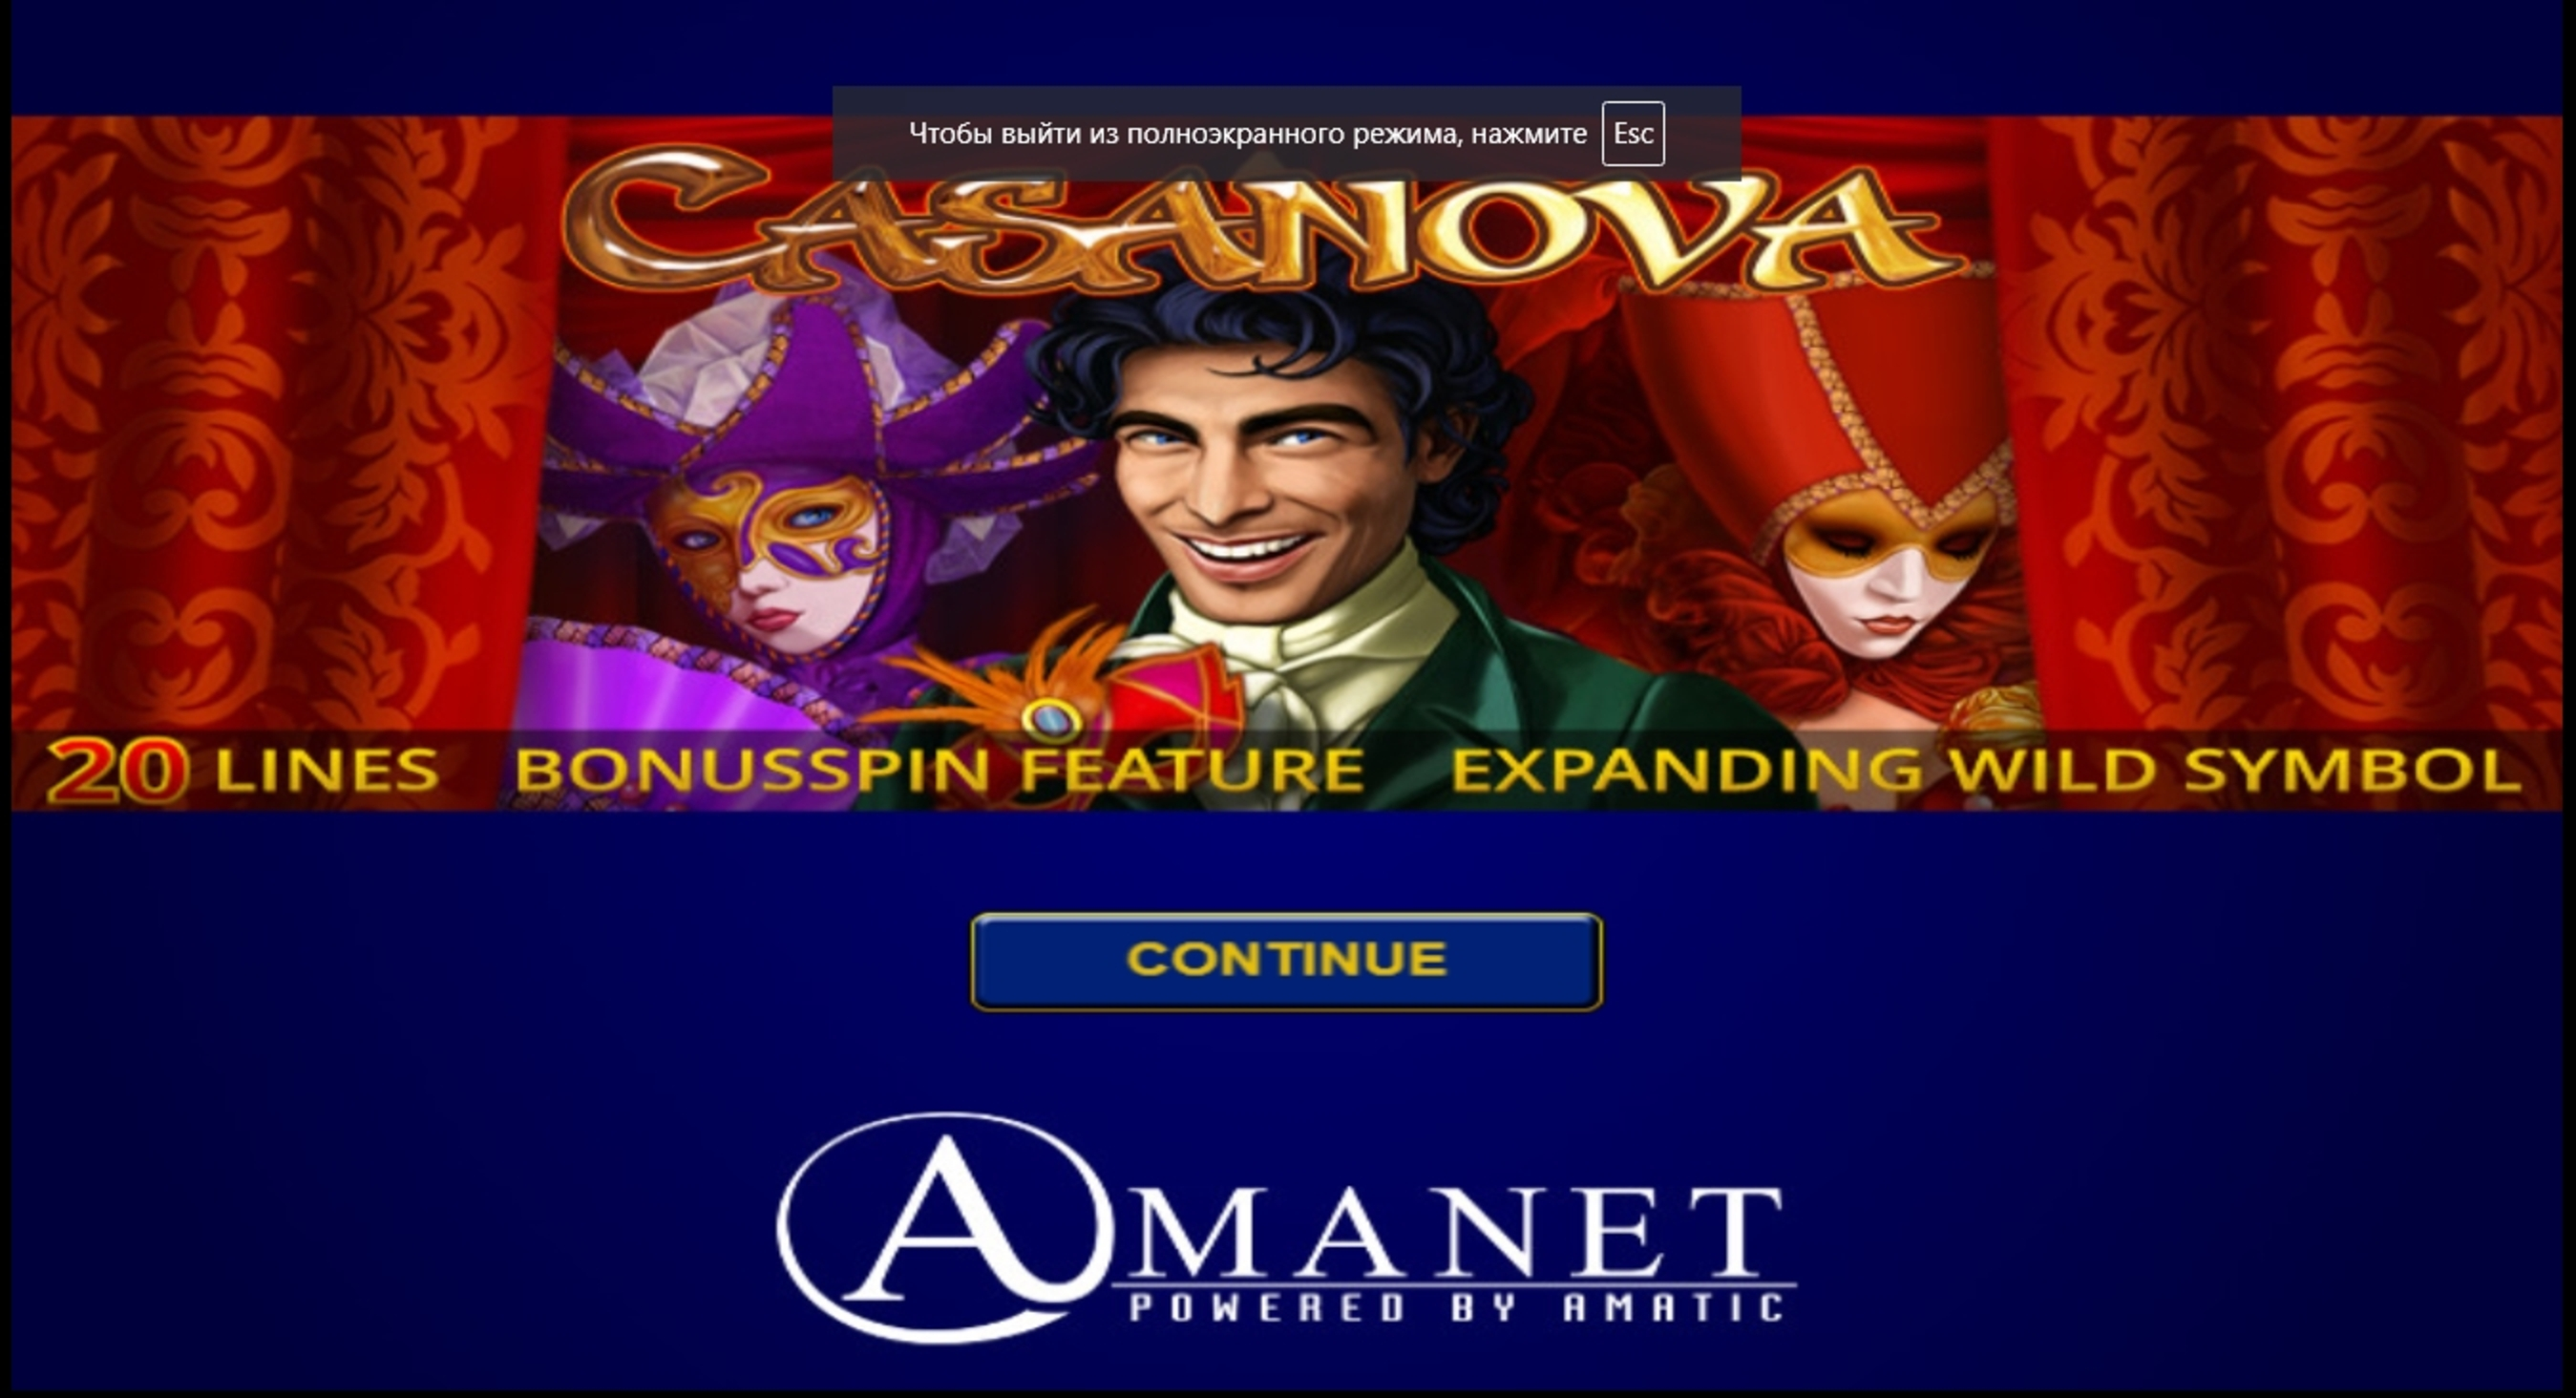 Play Casanova Free Casino Slot Game by Amatic Industries